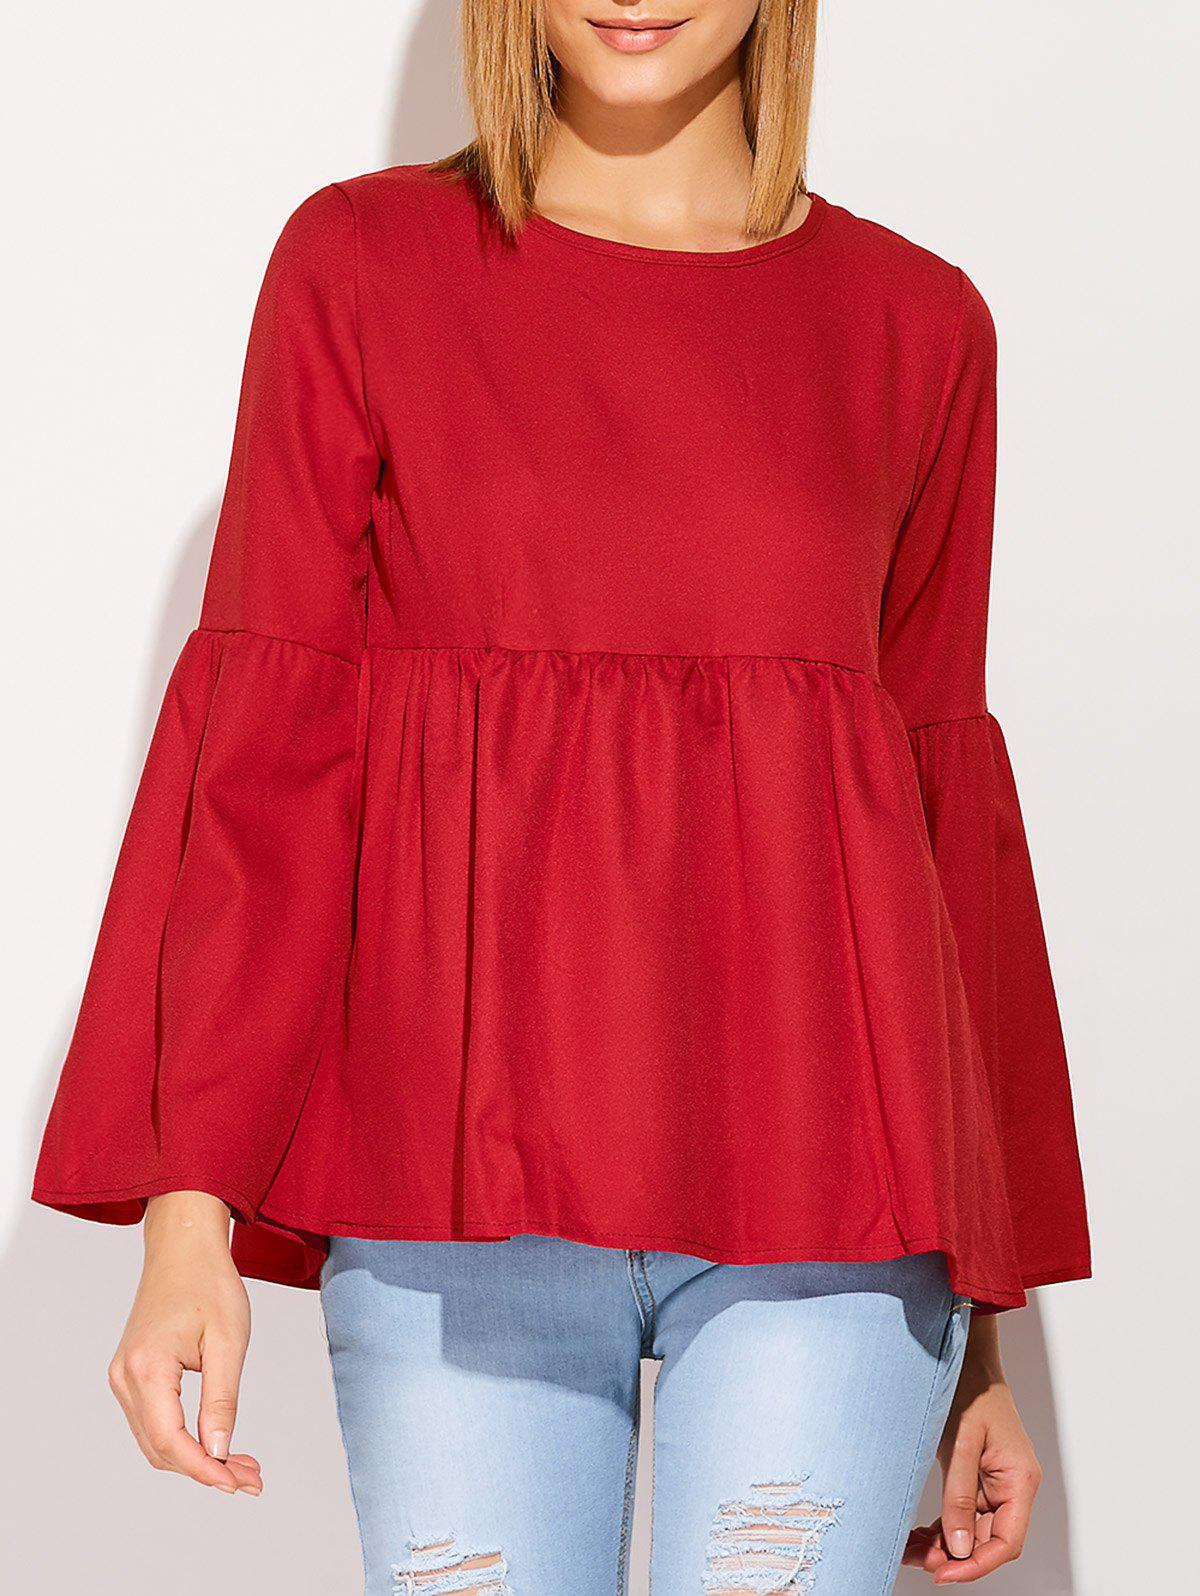 Flare Sleeve Smock T-Shirt - WINE RED L